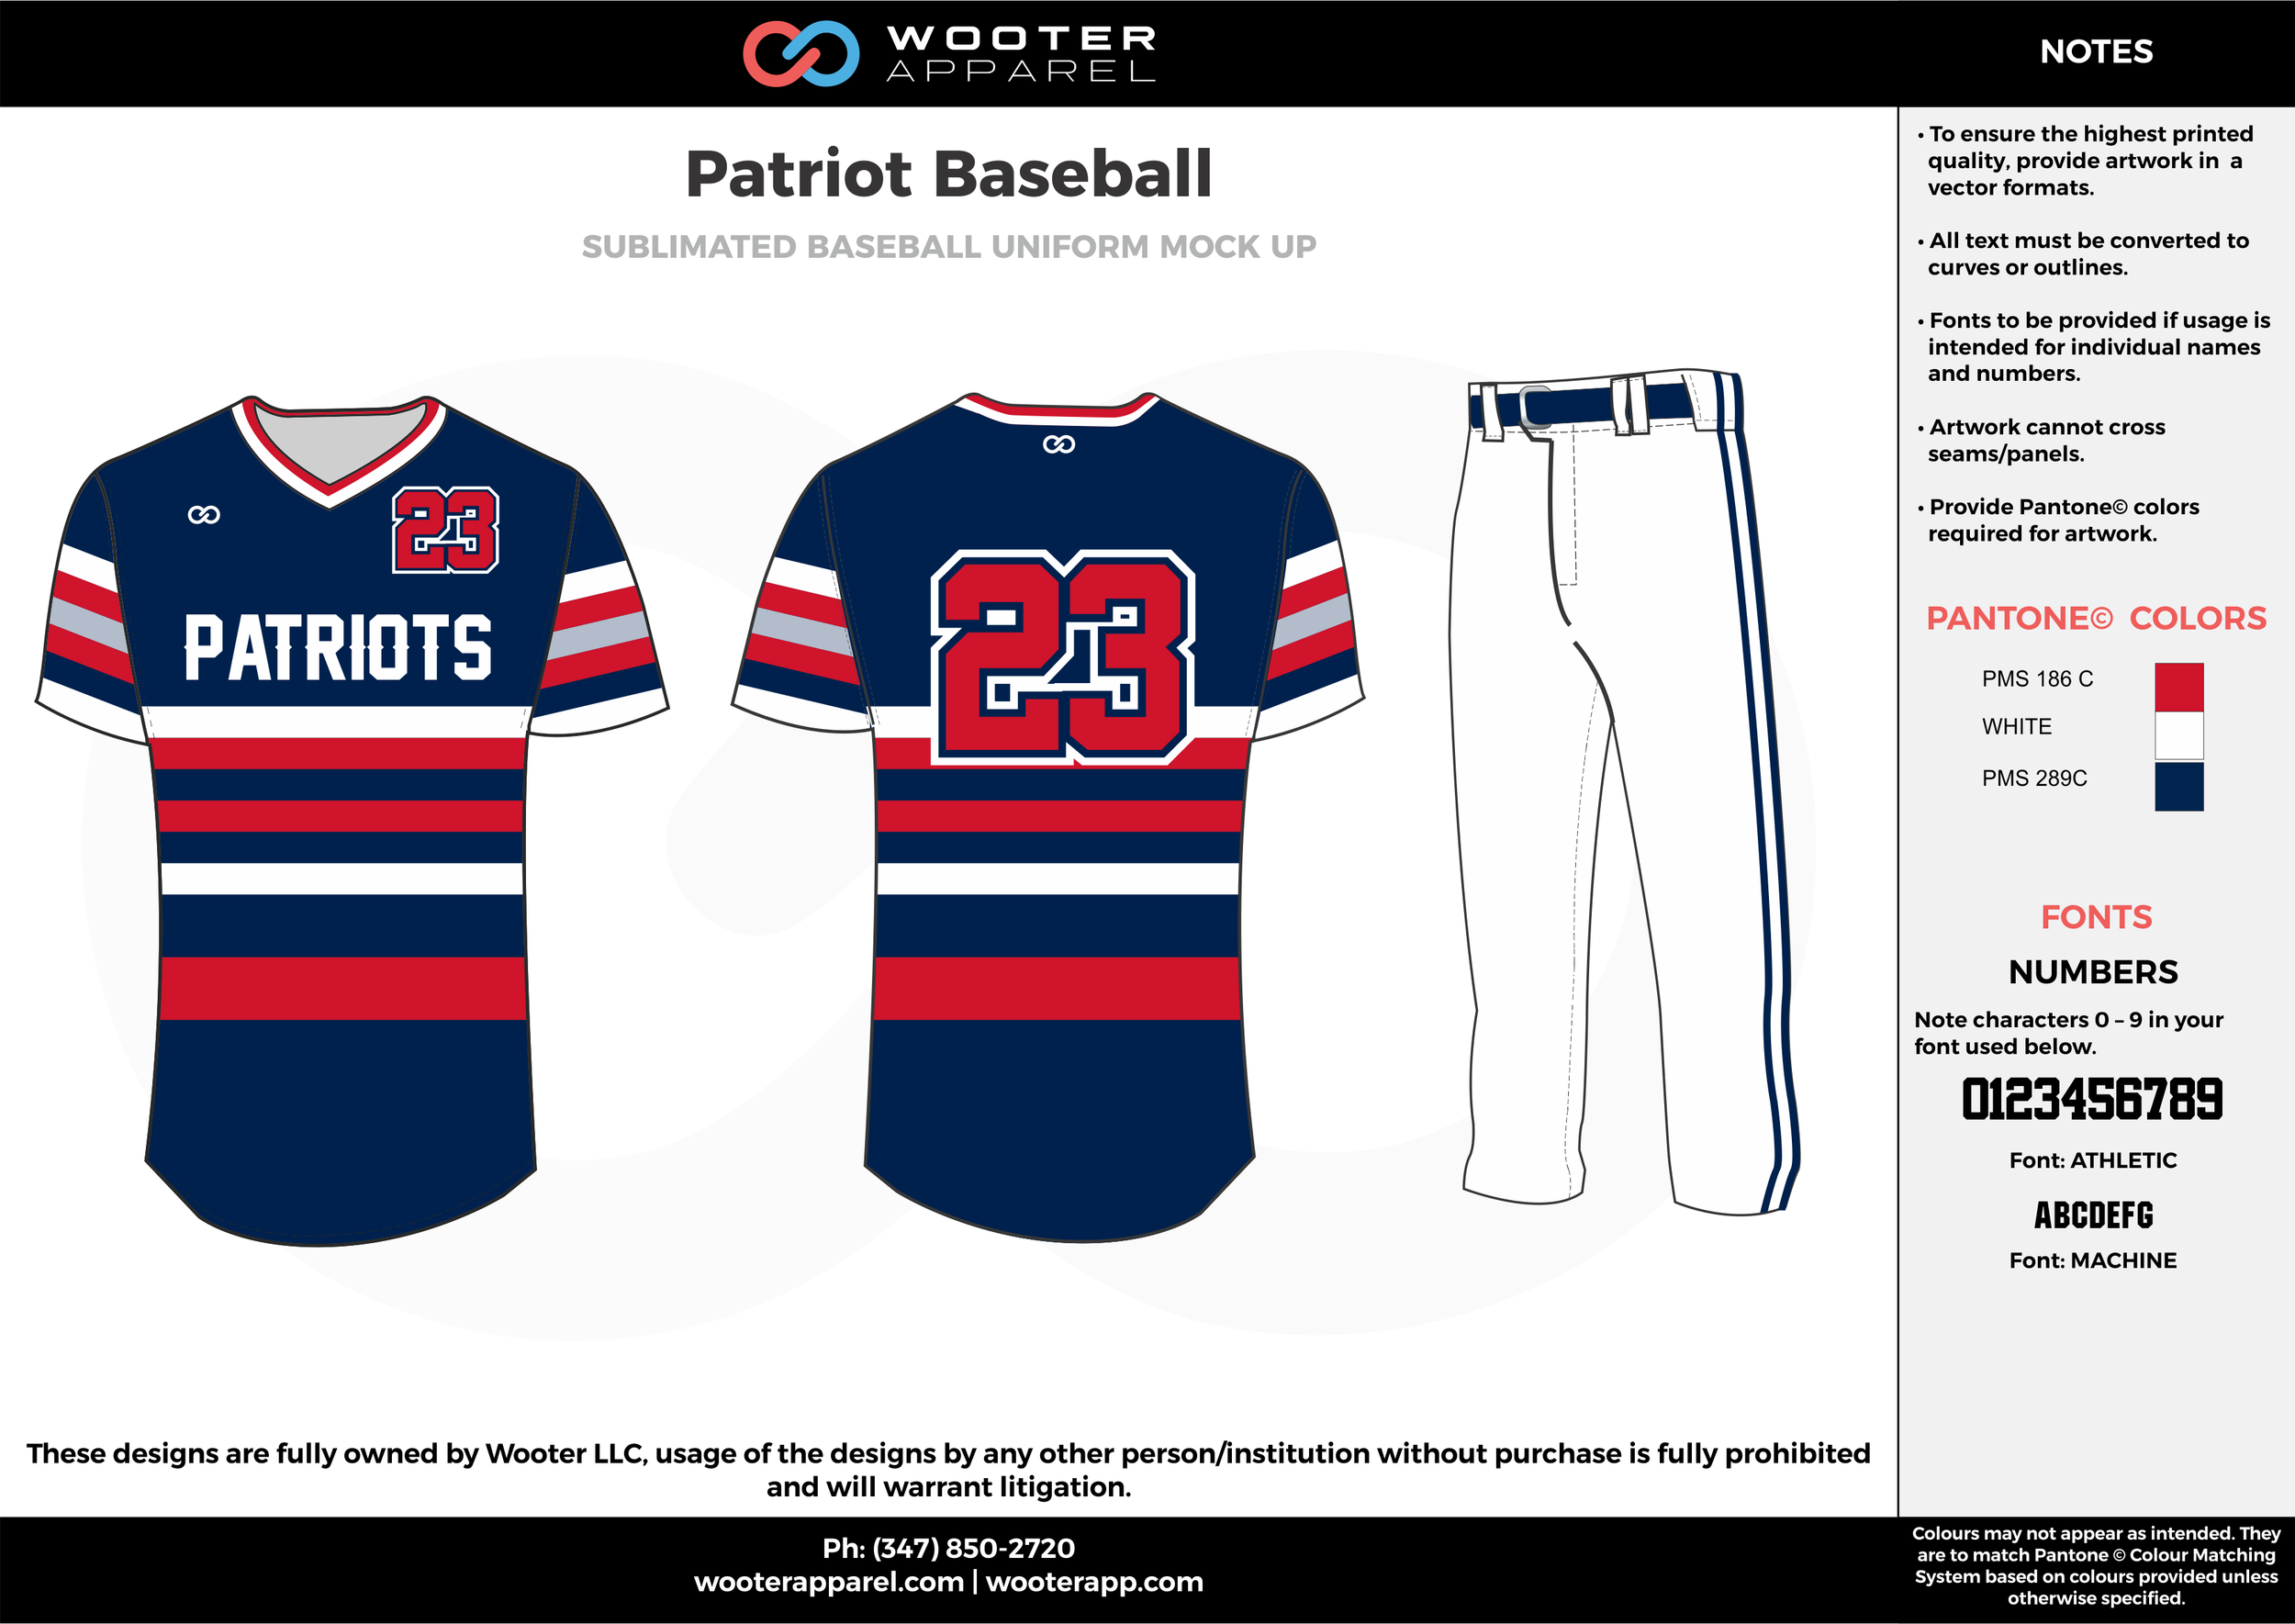 PATRIOT BASEBALL dark blue red white baseball uniforms jerseys pants